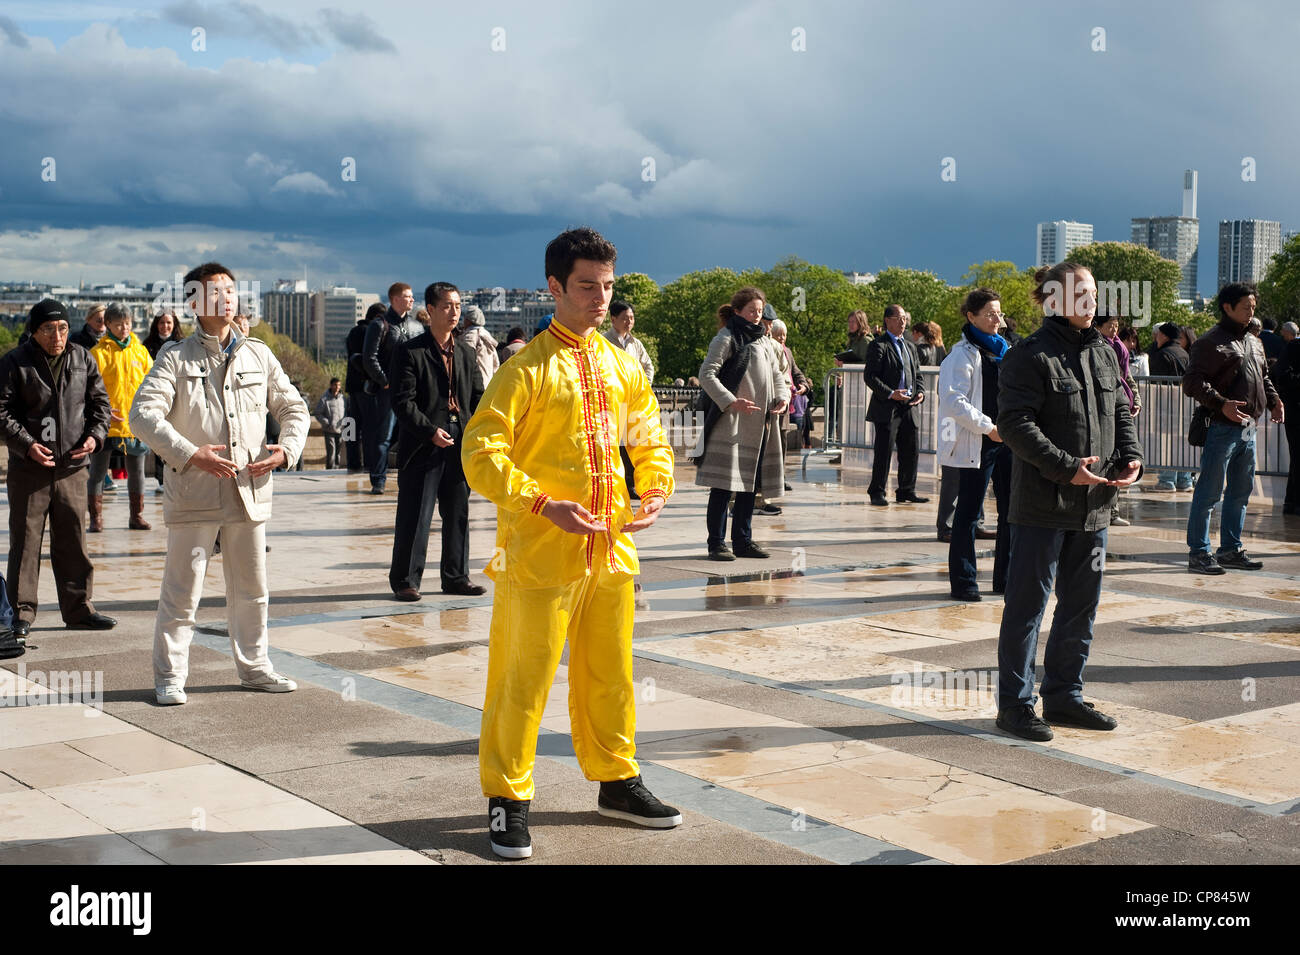 Paris, France - People doing tai chi and qi gong exercises